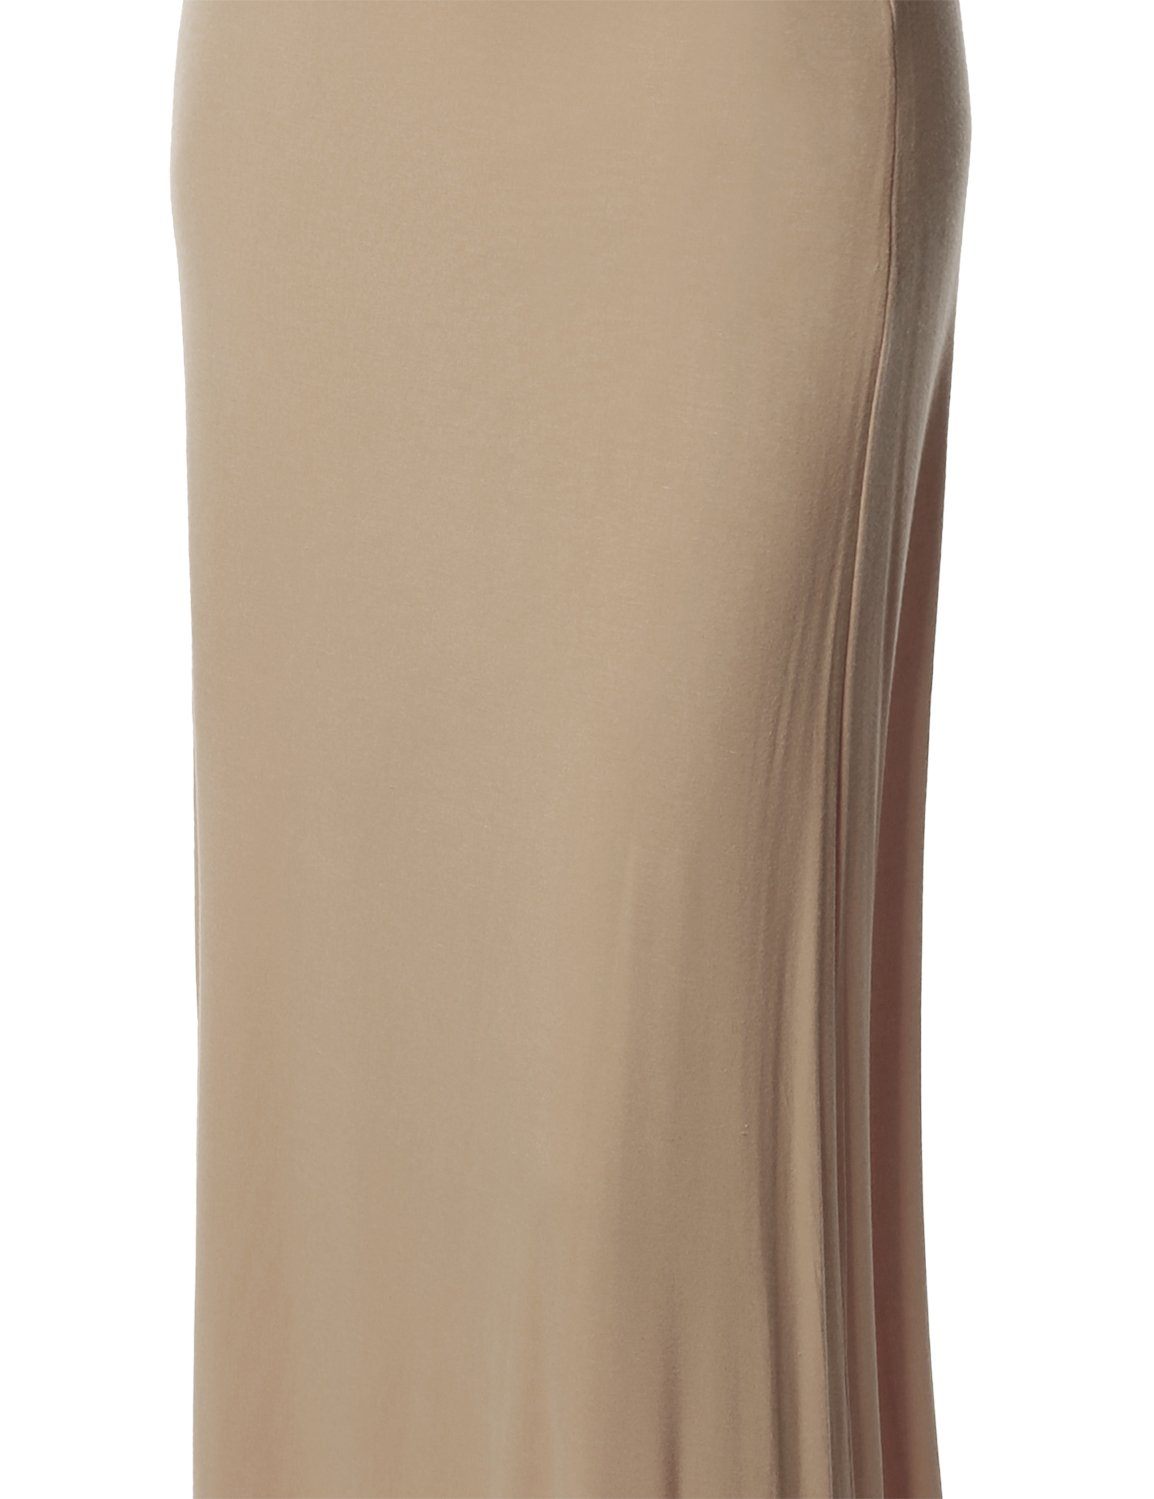 Stylish Fold Over Flare Long Maxi Skirt - Made in USA Beige M by Made by Emma (Image #4)